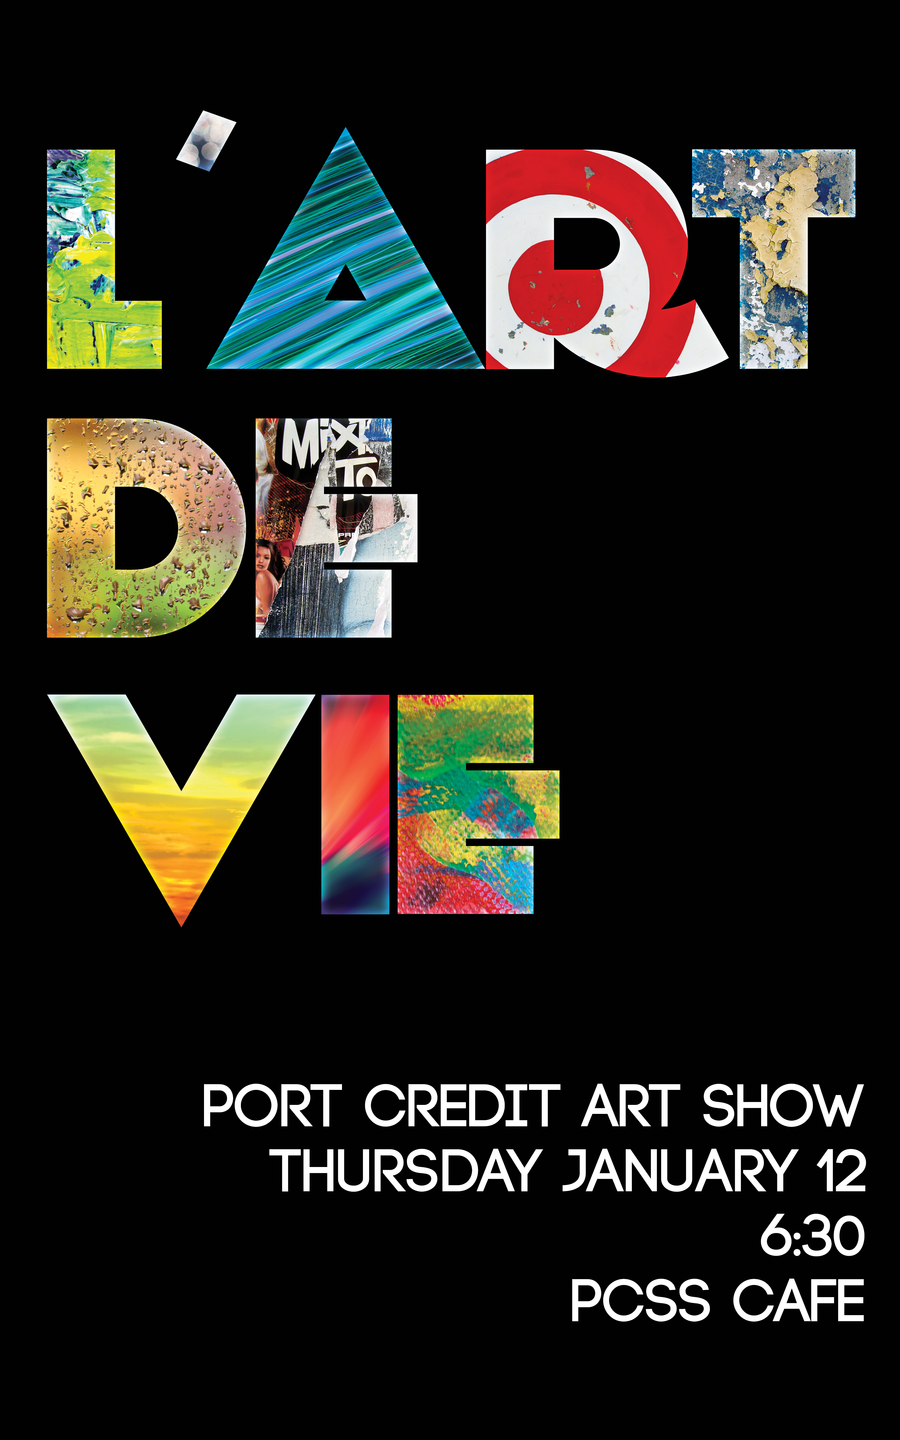 L 39 art de vie art show poster by emmersonic on deviantart for Posters art prints